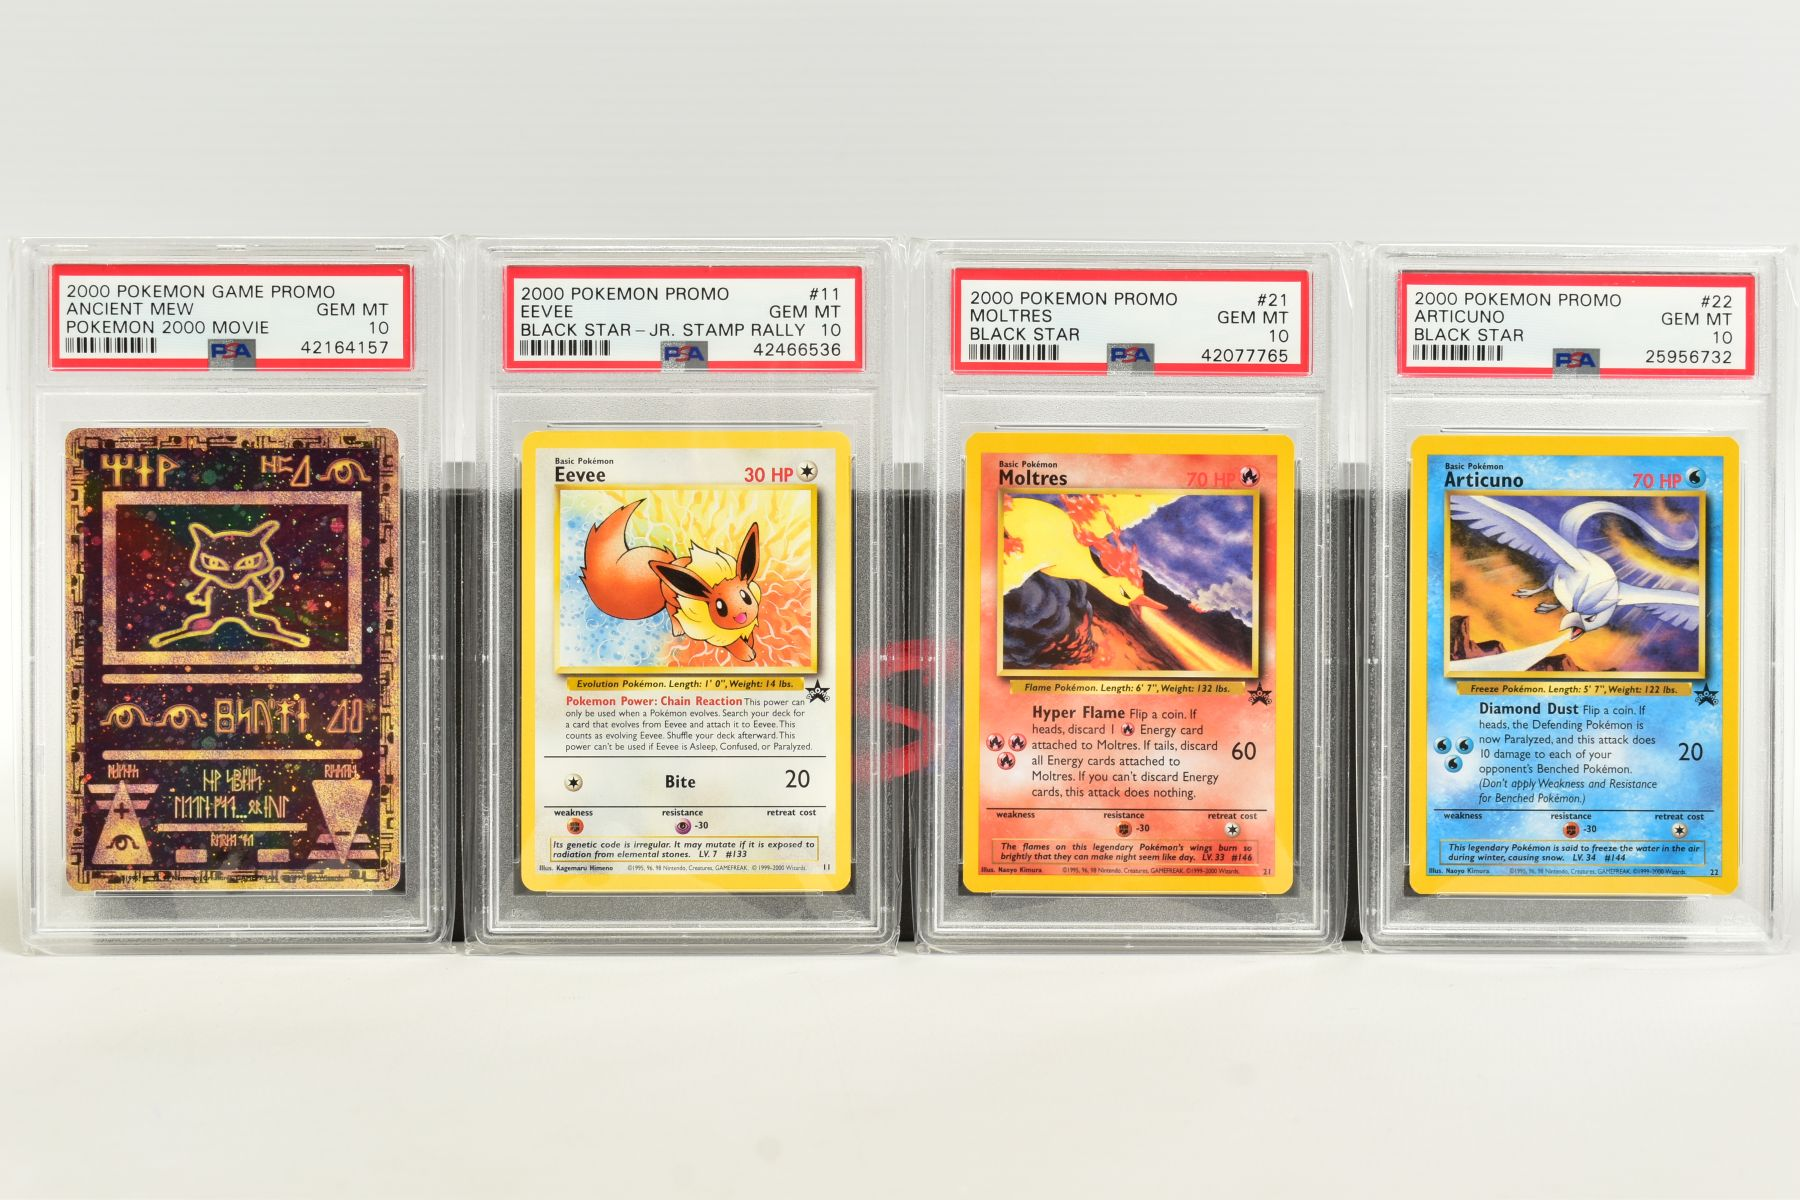 A QUANTITY OF PSA GRADED WIZARDS OF THE COAST POKEMON BLACK STAR PROMO CARDS, all date from 2000 - Image 7 of 8